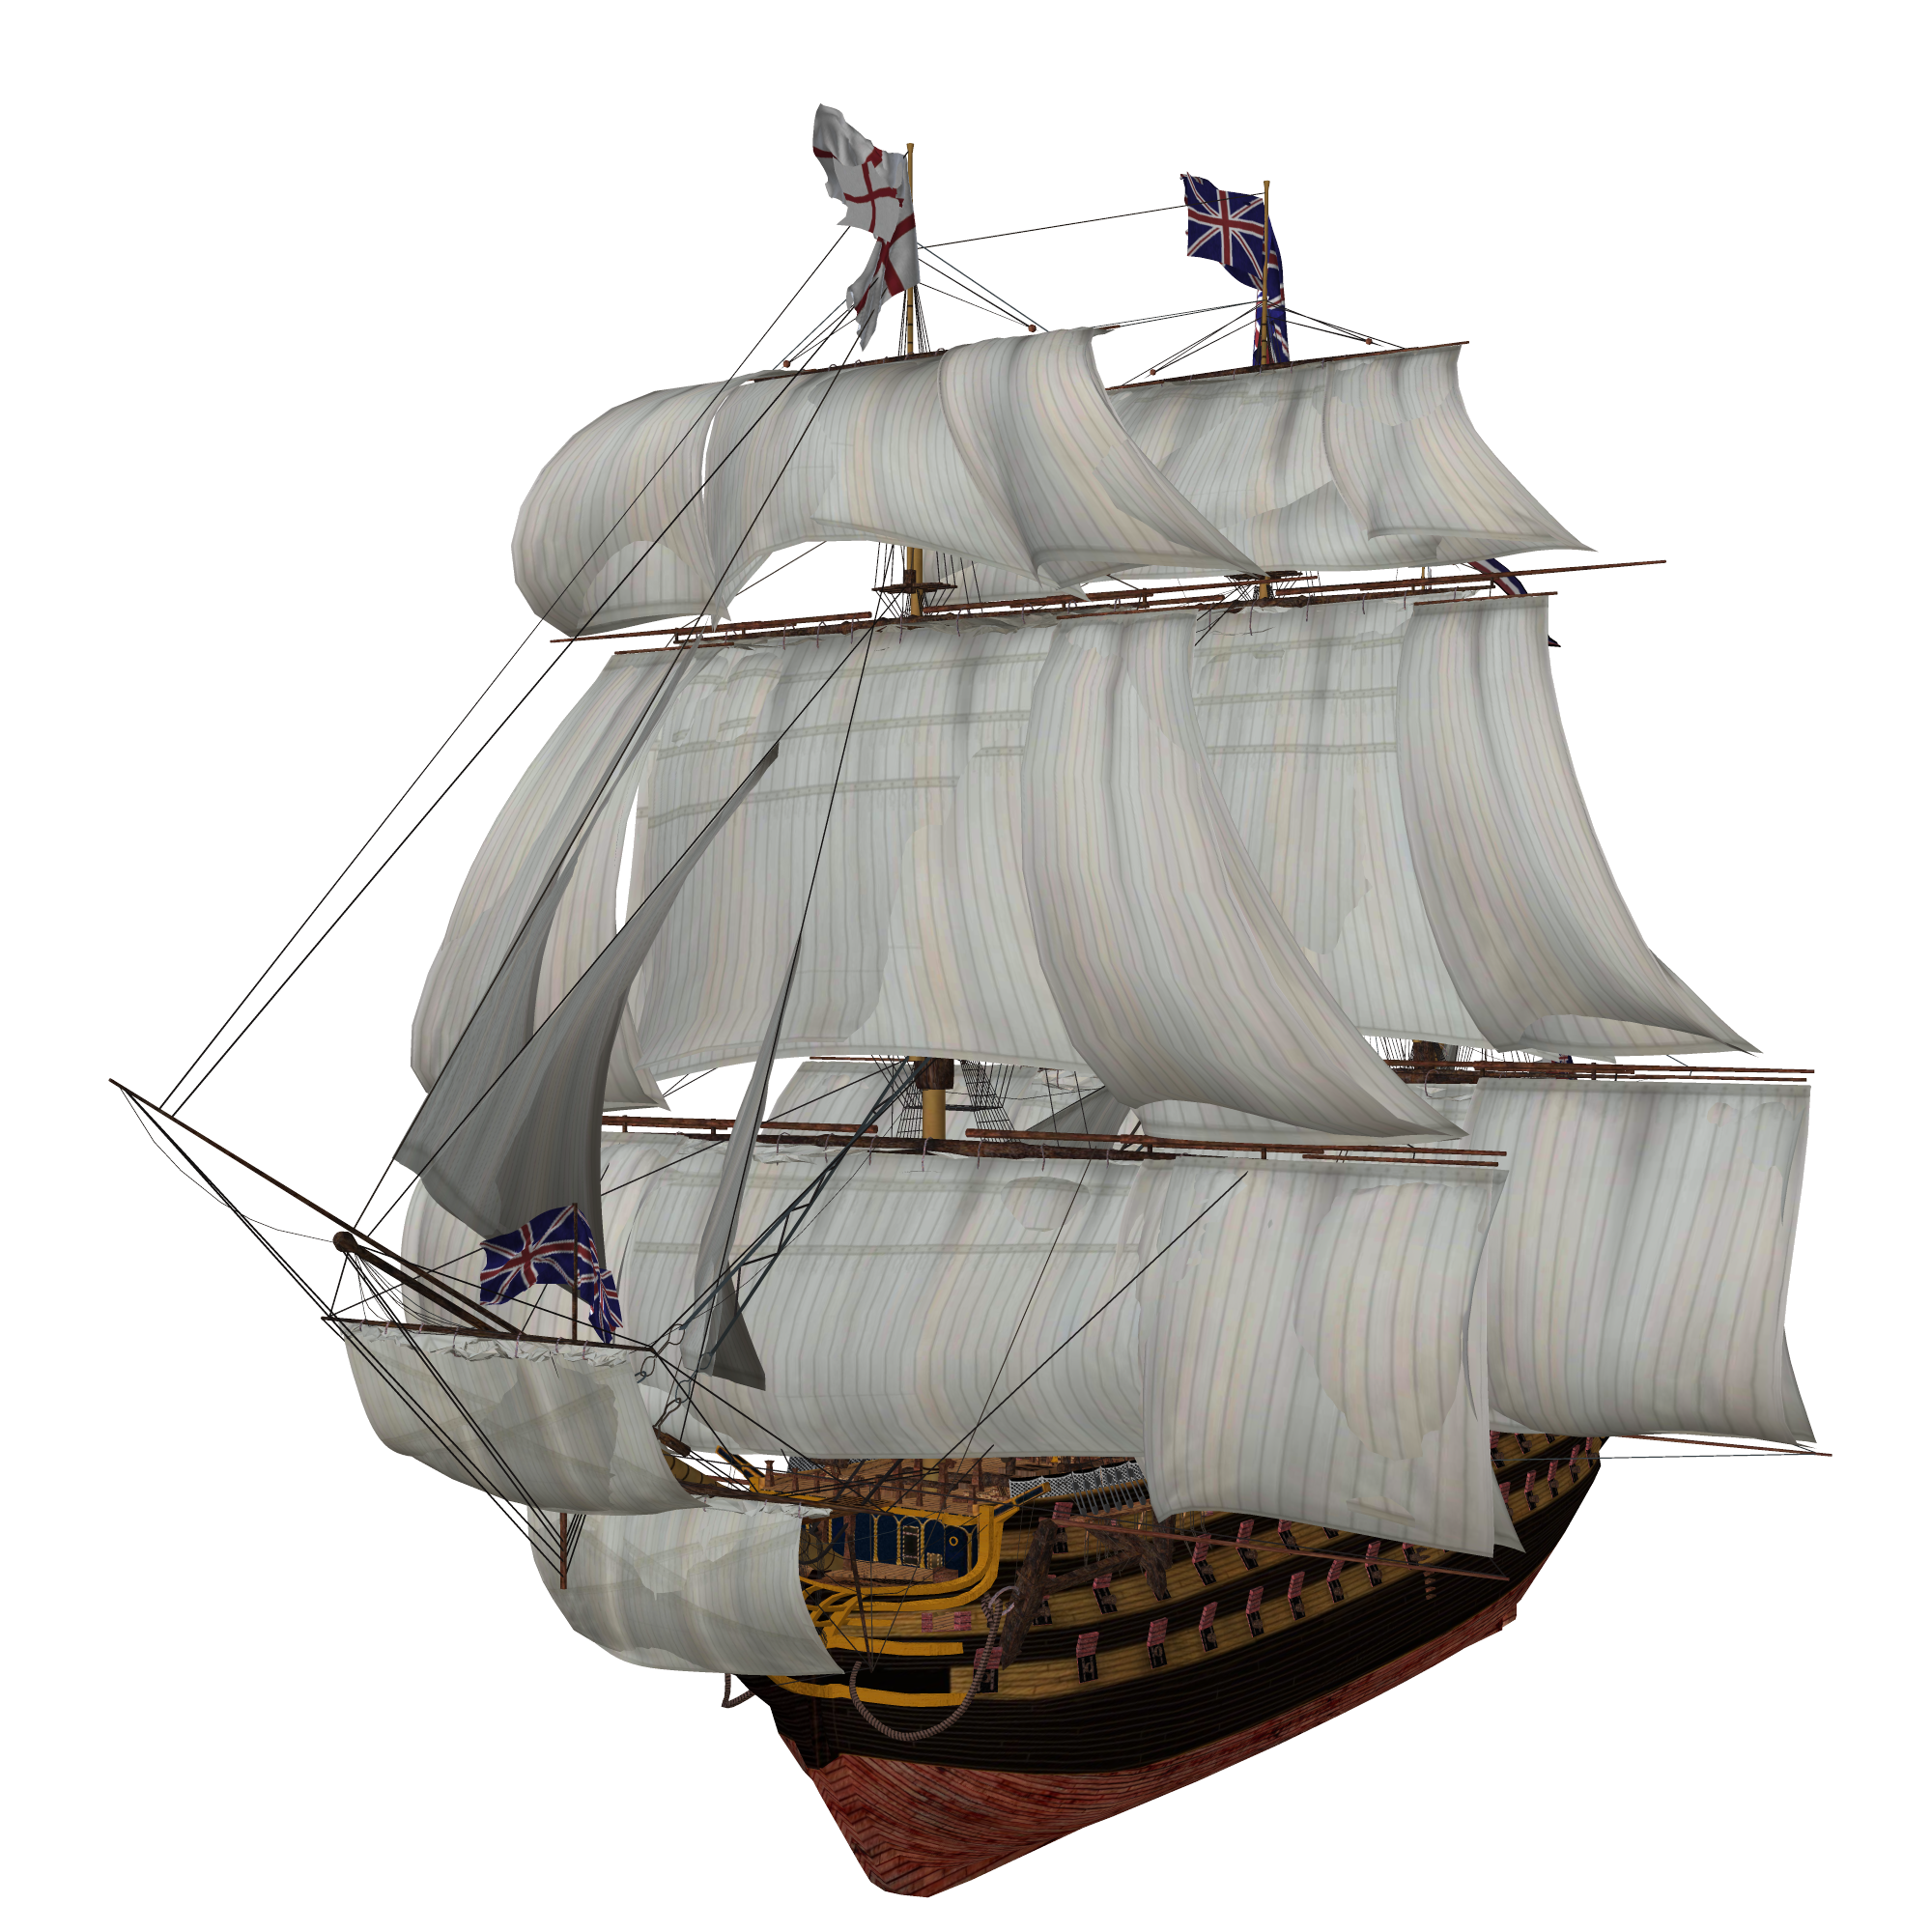 Yacht png ship. Hd transparent images pluspng